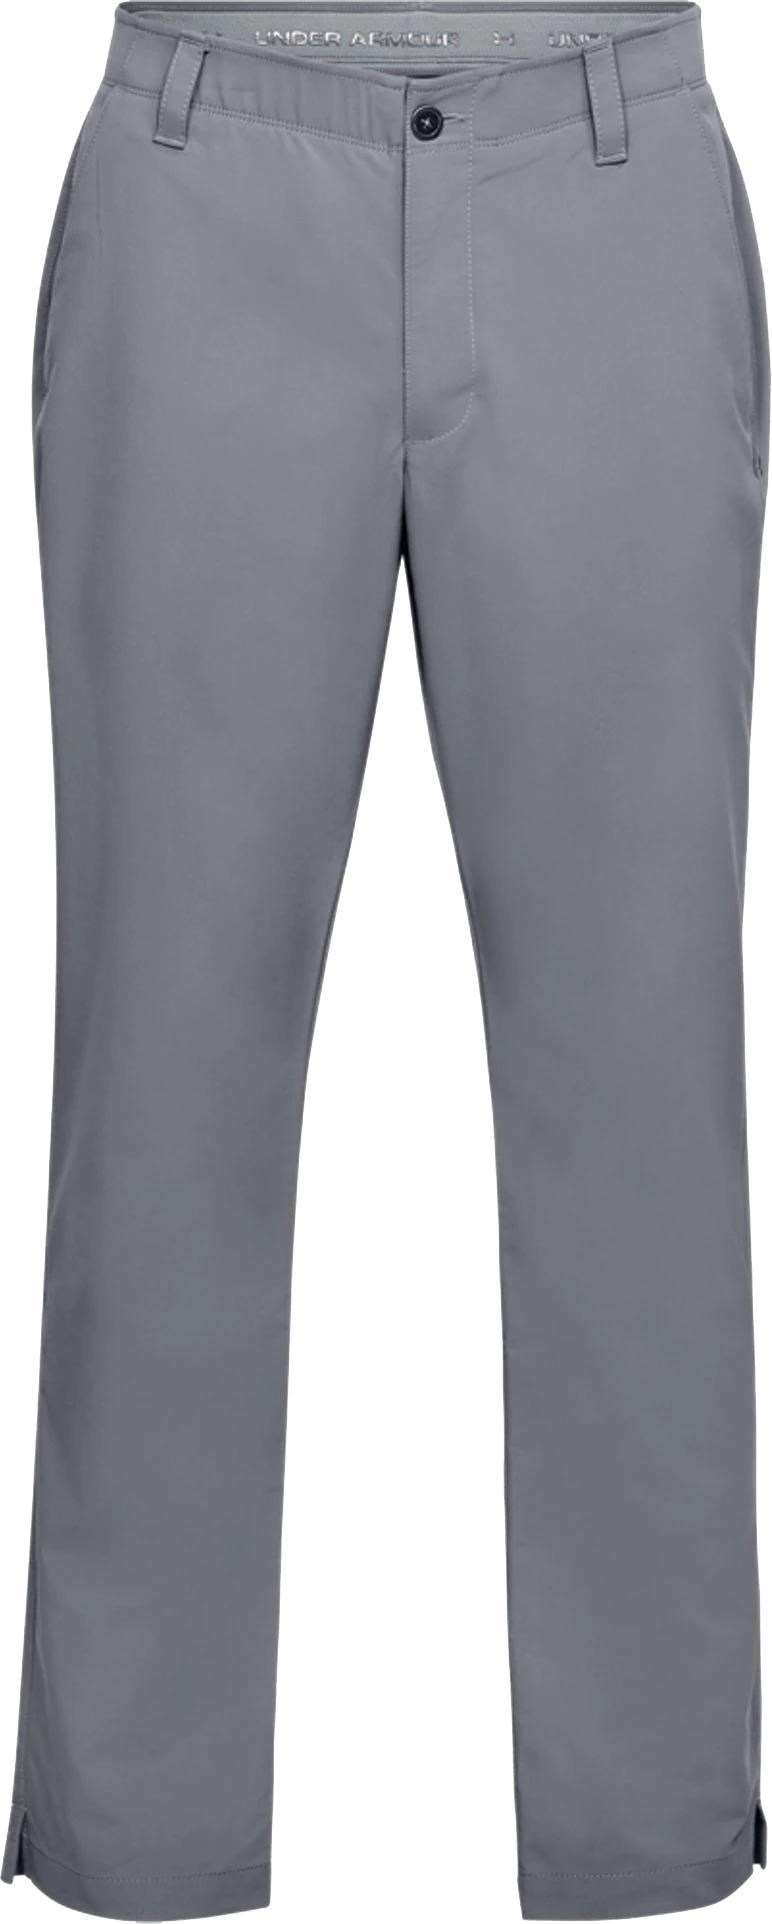 Under Armour Matchplay Tapered Herren Golfhose